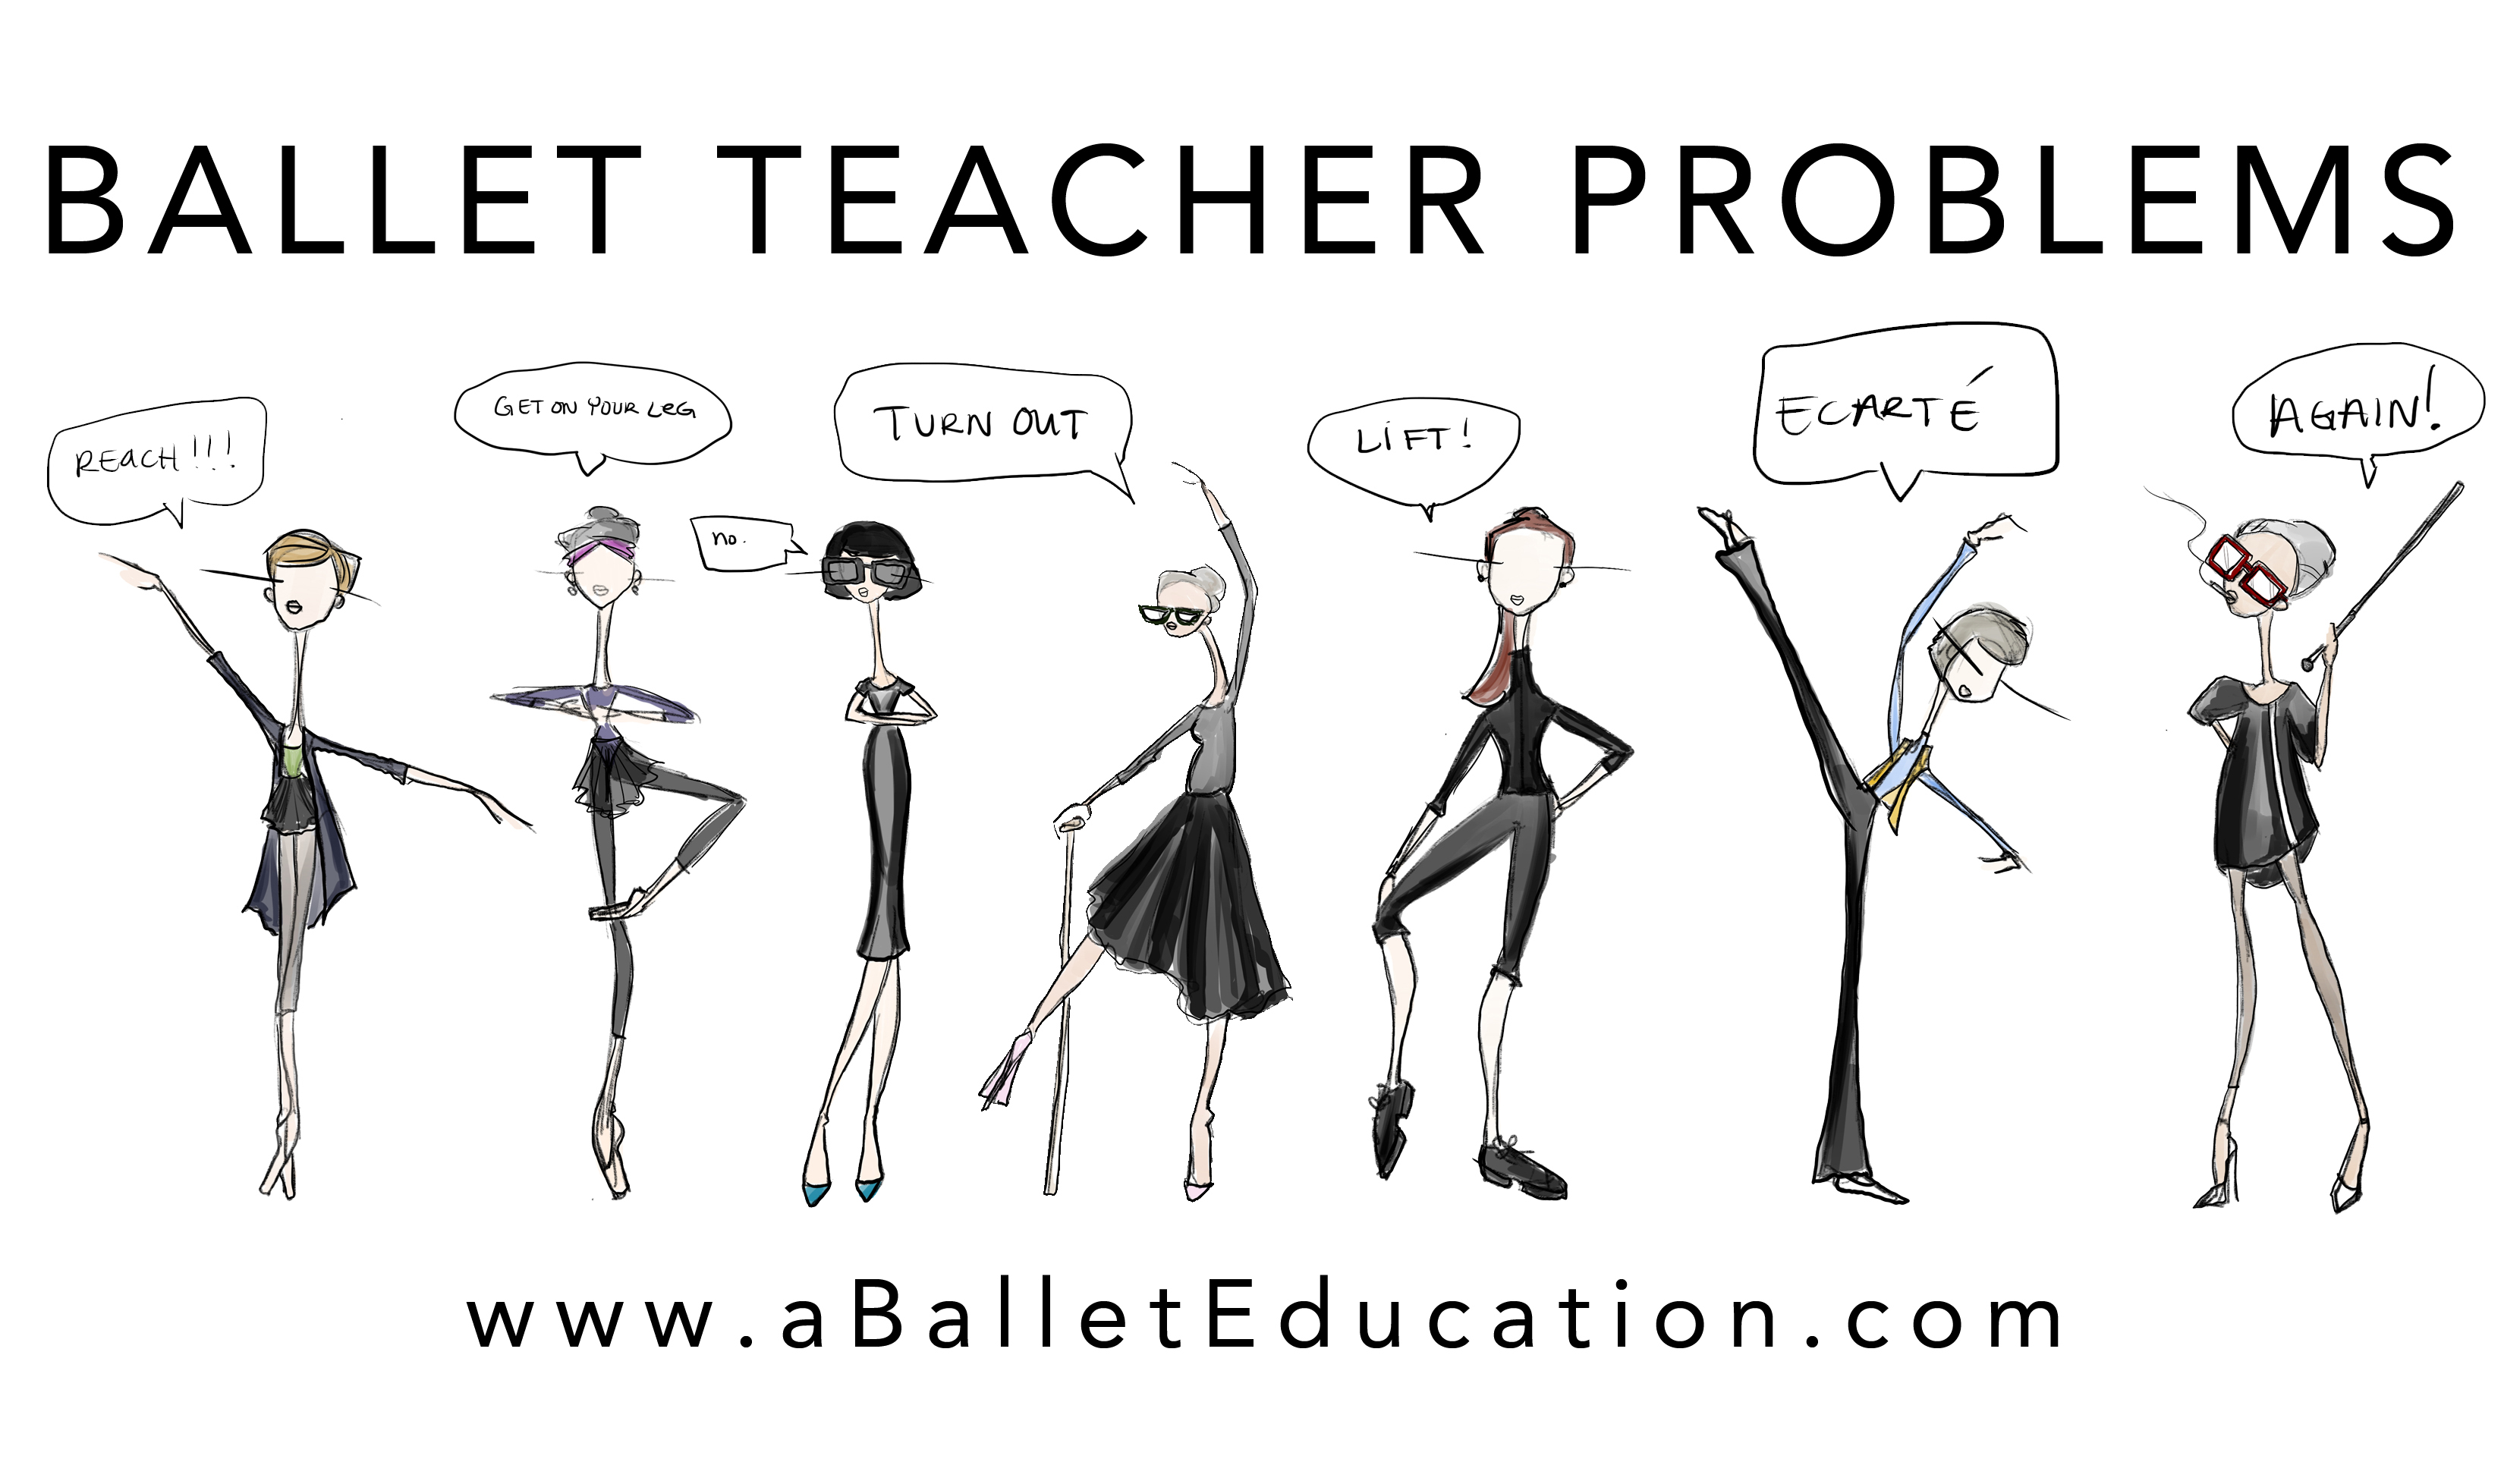 dance difficulties Welcome to my blog for teachers, lecturers and support staff working with students with learning difficulties 16+ if you are new to blogs: clicking on this header will take you to the latest blog entry.